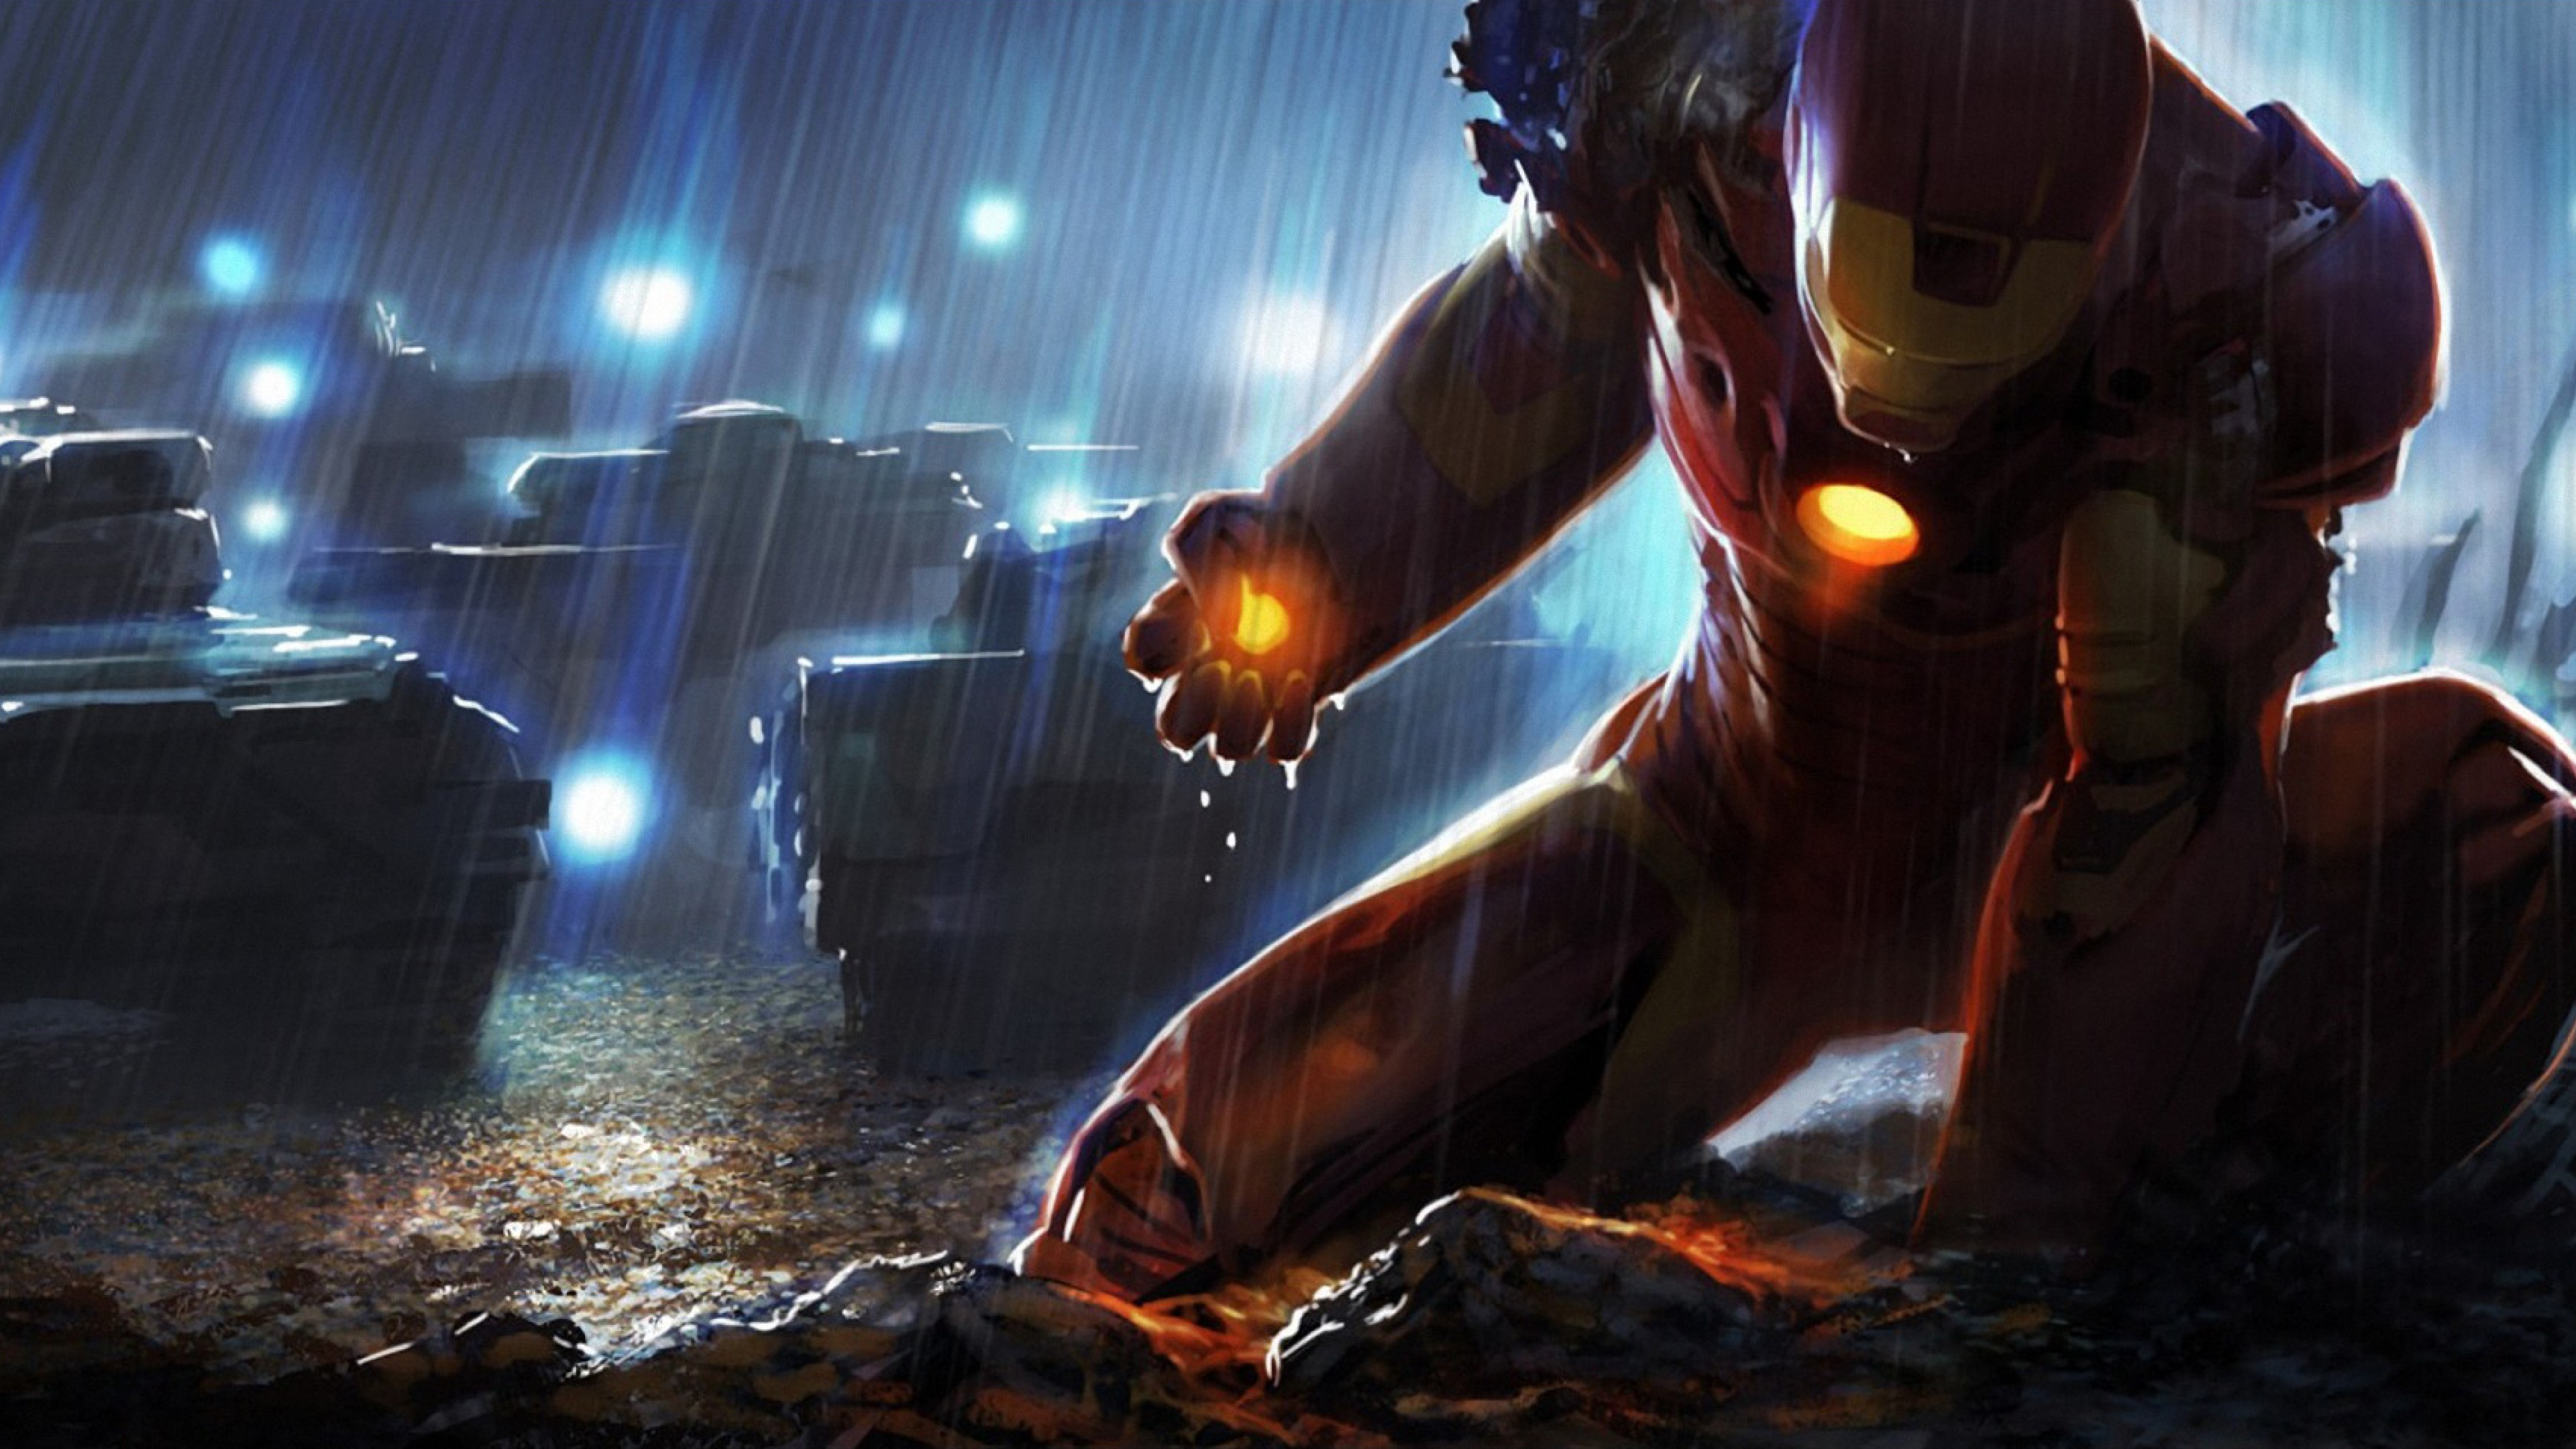 Heroes Superhero Raining Tanks Hd Wallpaper Desktop Marvel Hd Wallpapers For Pc 1600x798 Download Hd Wallpaper Wallpapertip